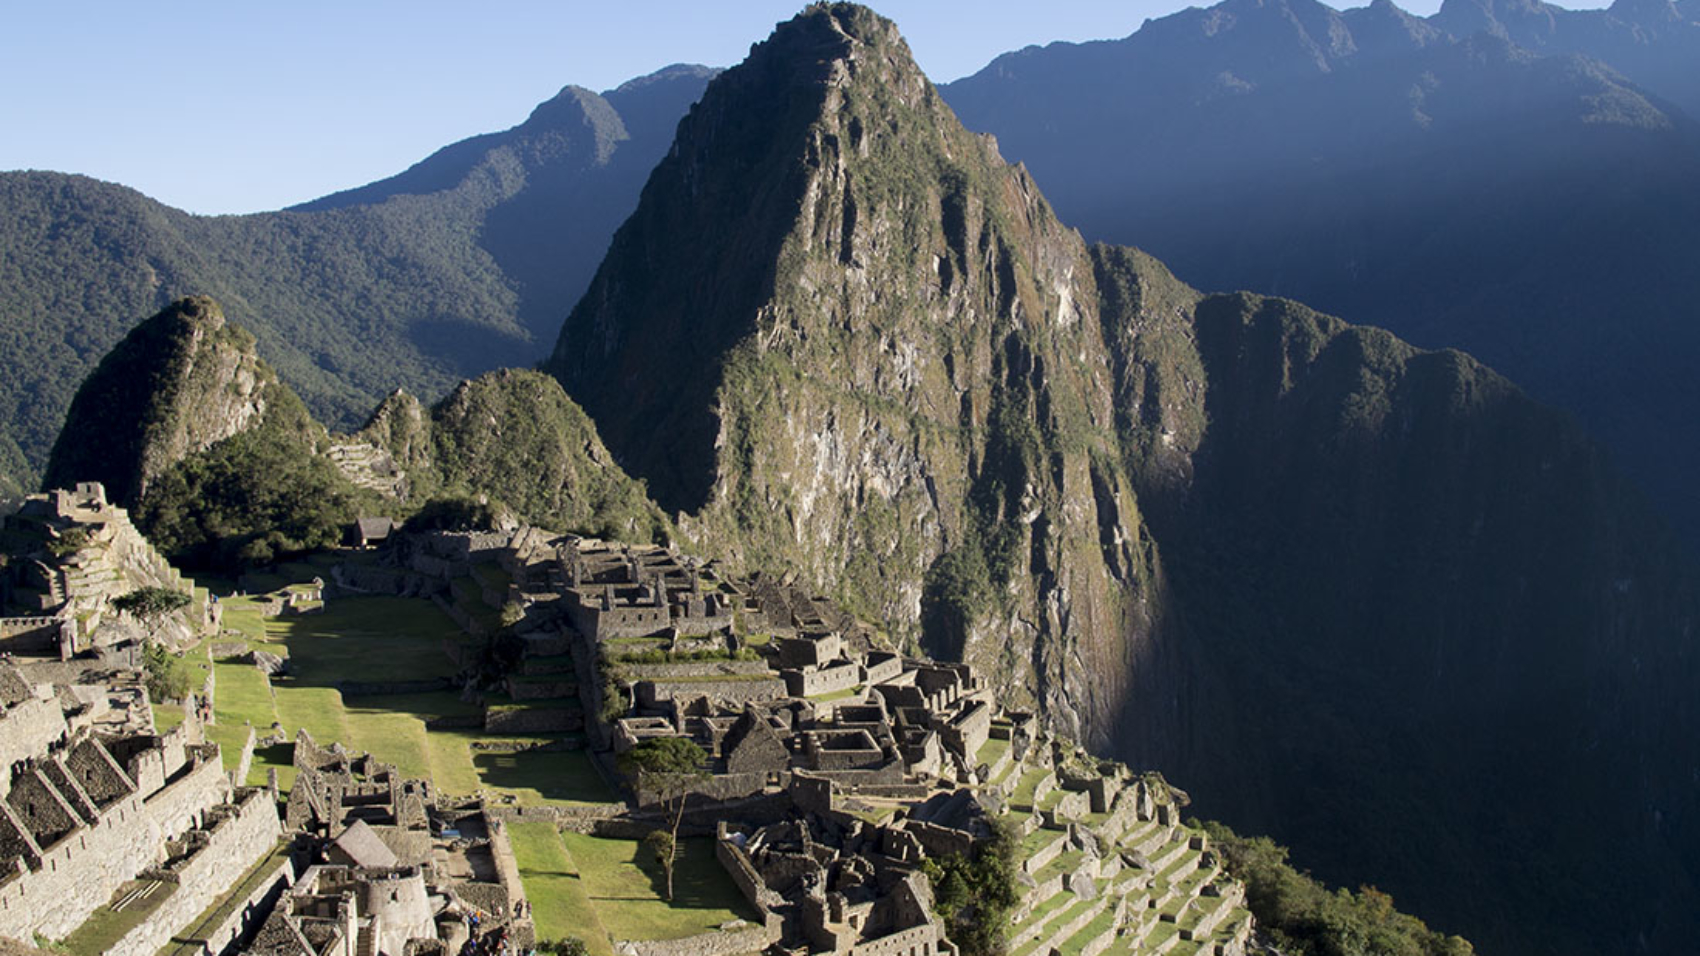 overlooking Machu Picchu at sunrise